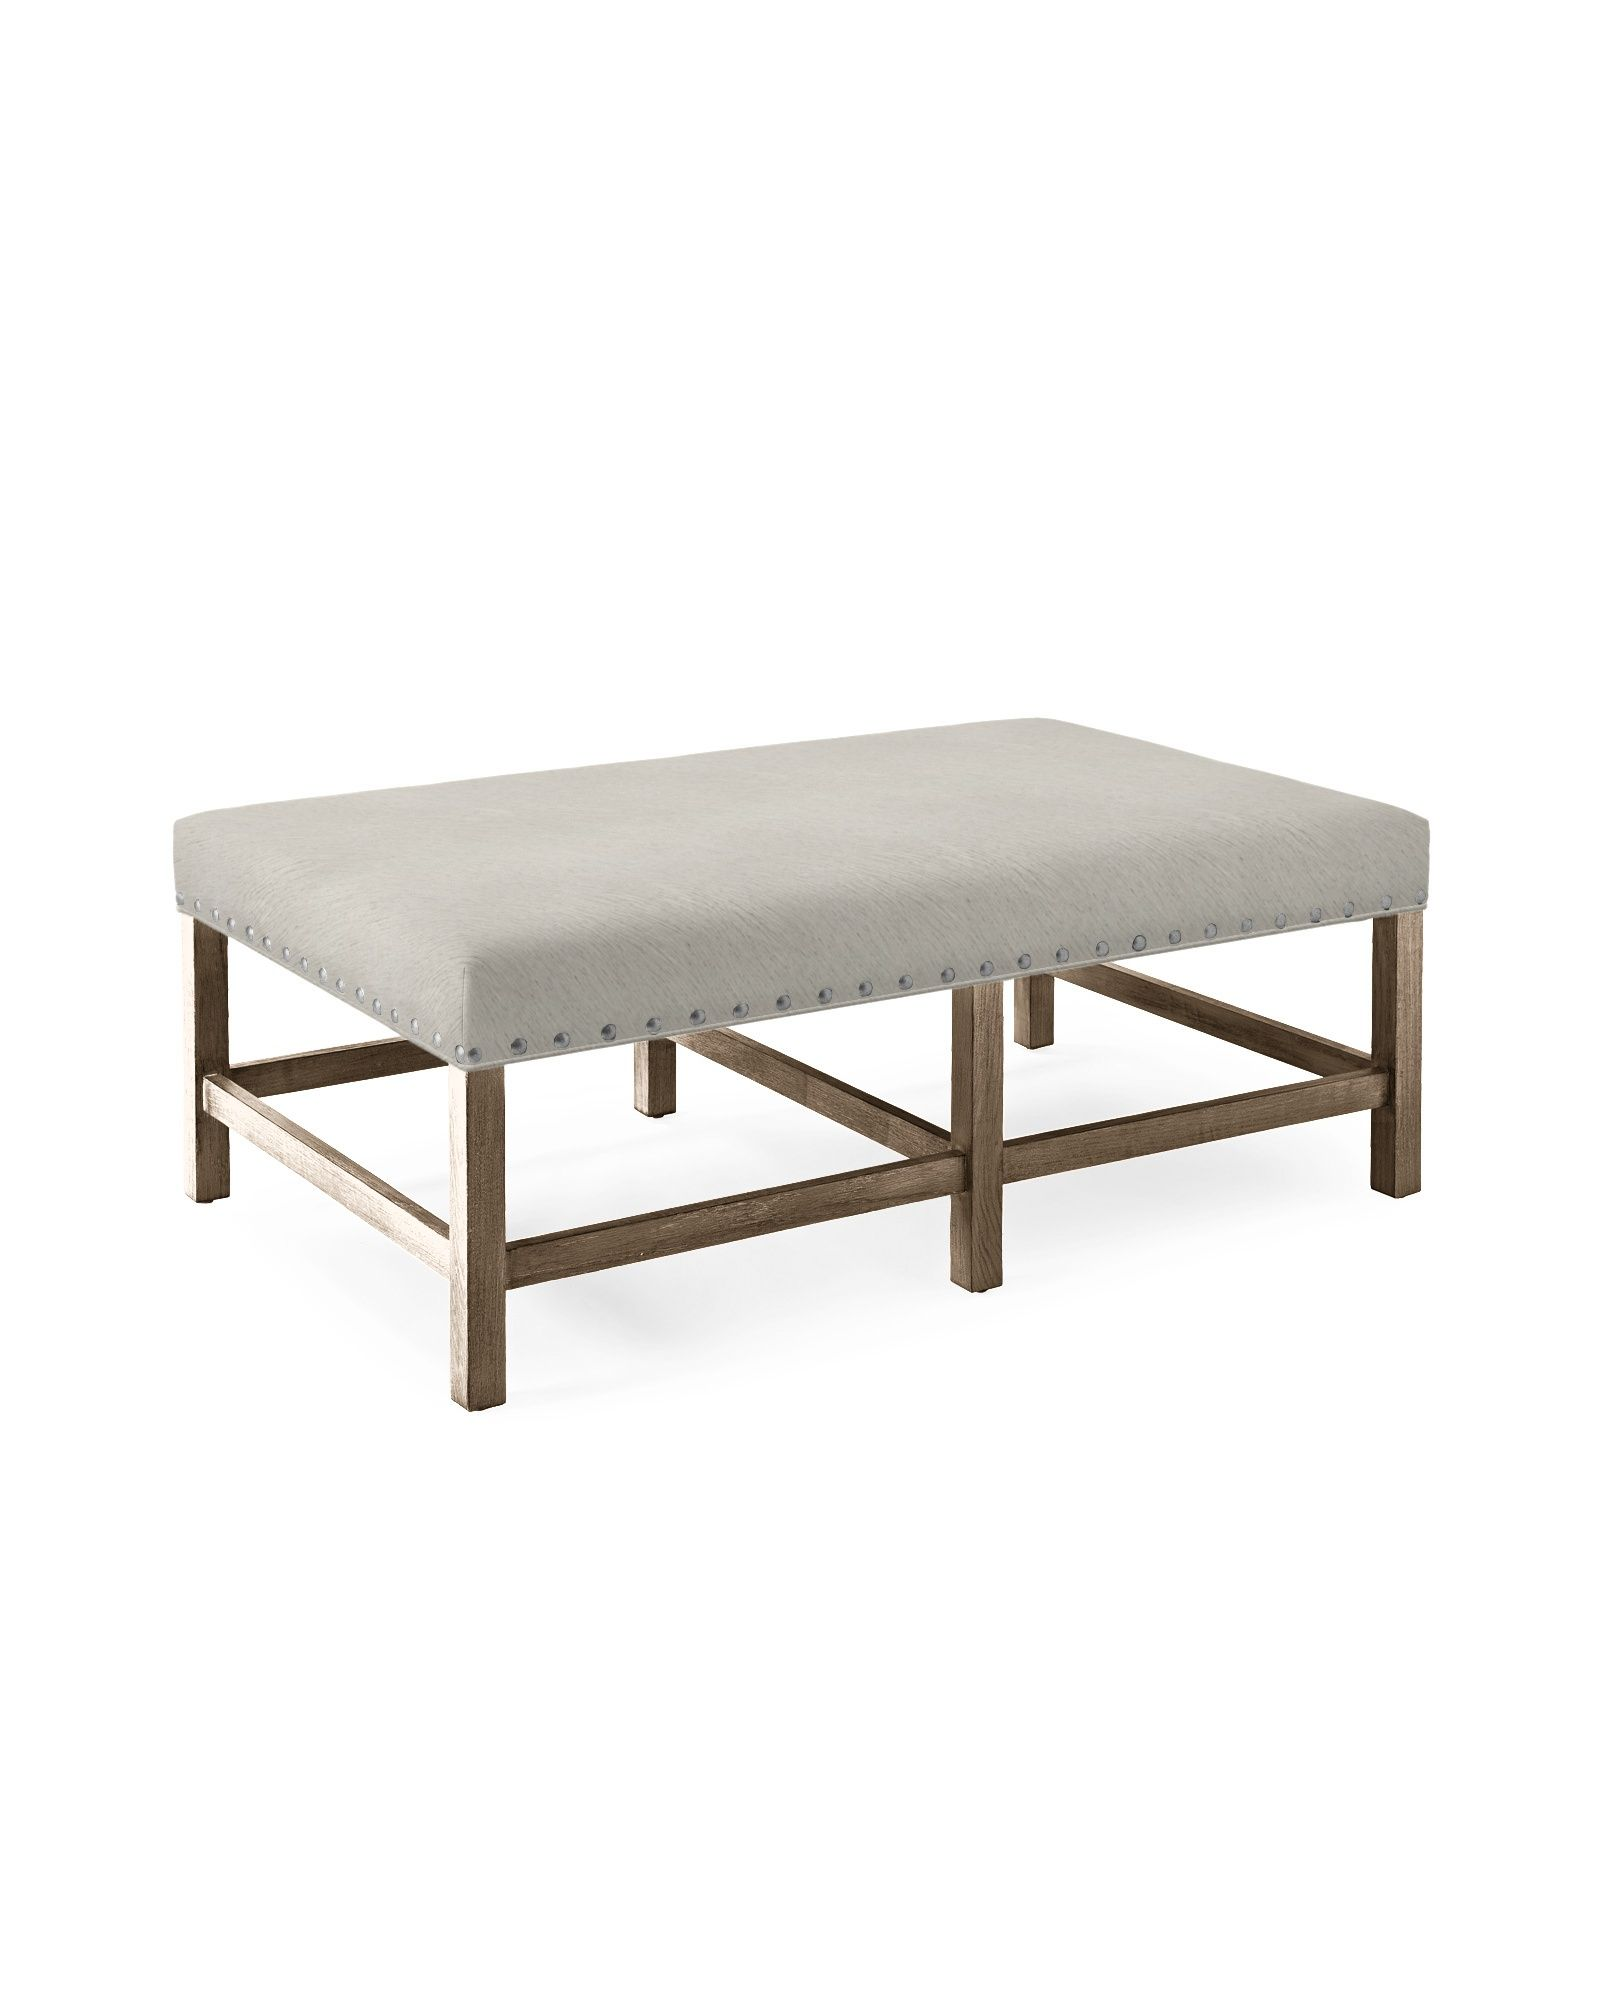 Clement coffee table ottoman ottoman table unique